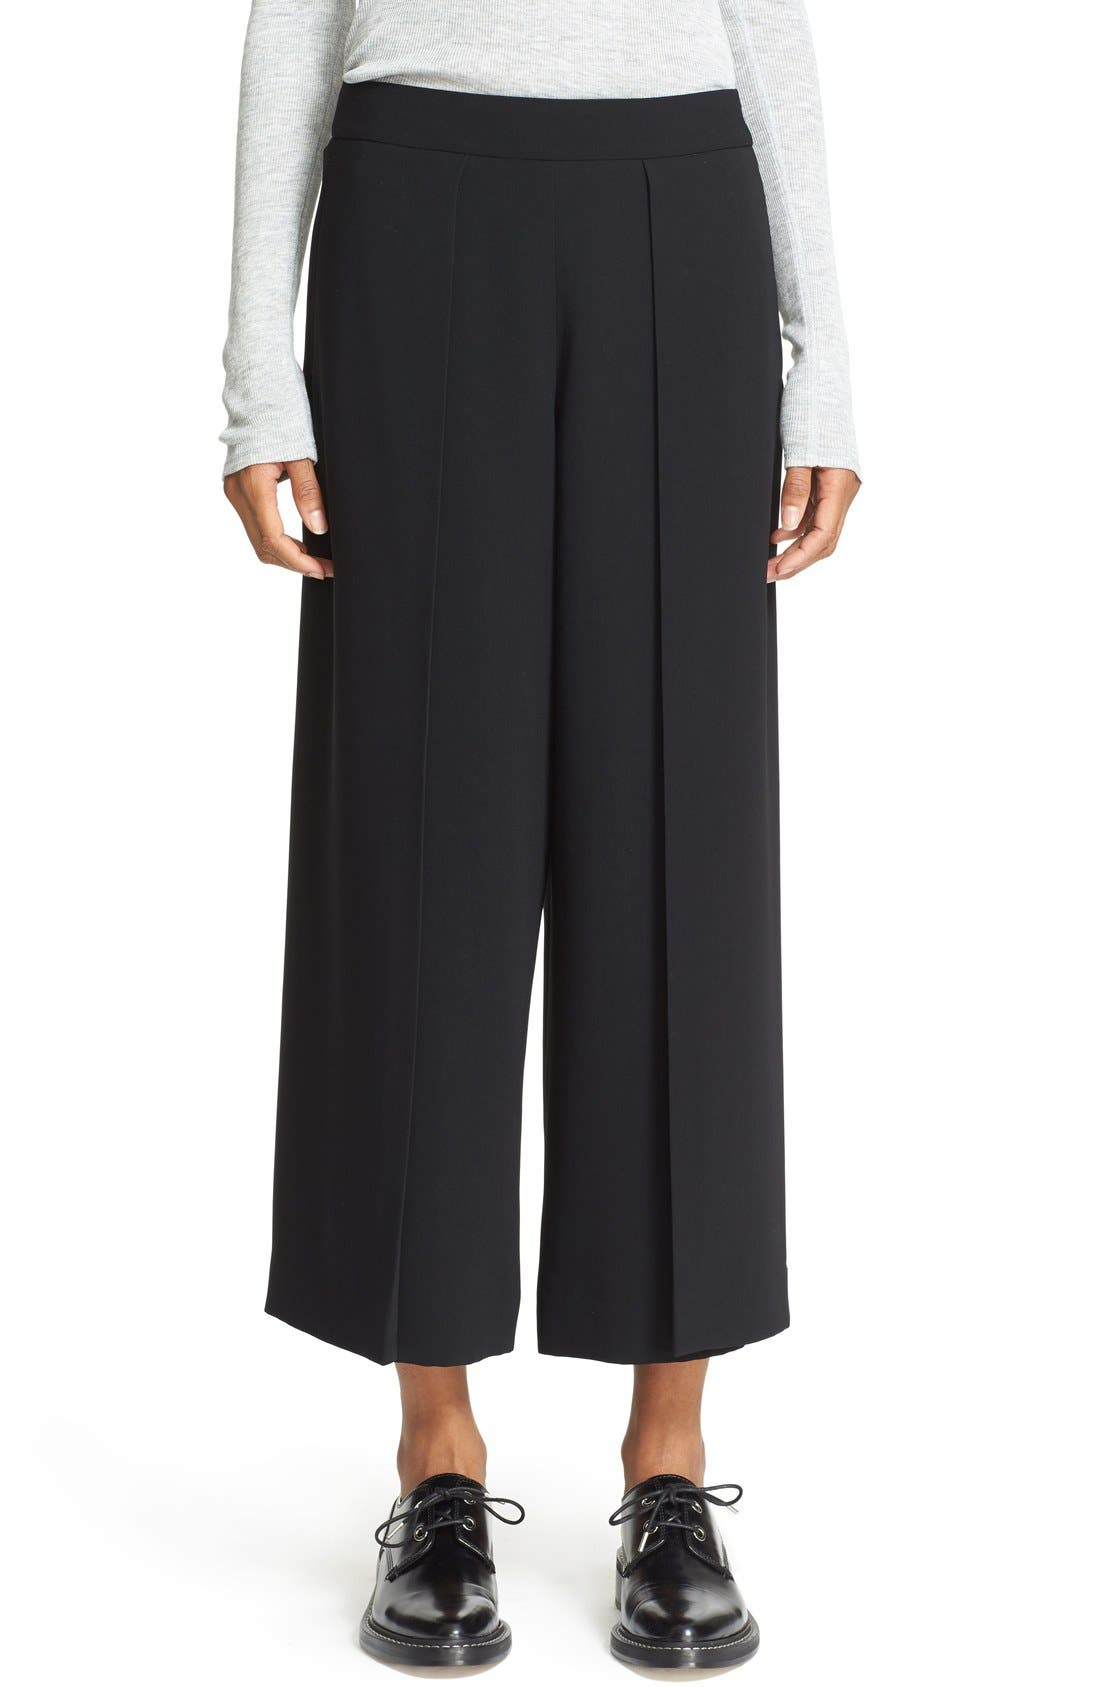 Alternate Image 1 Selected - rag & bone 'Rowe' Pleat Crop Pants